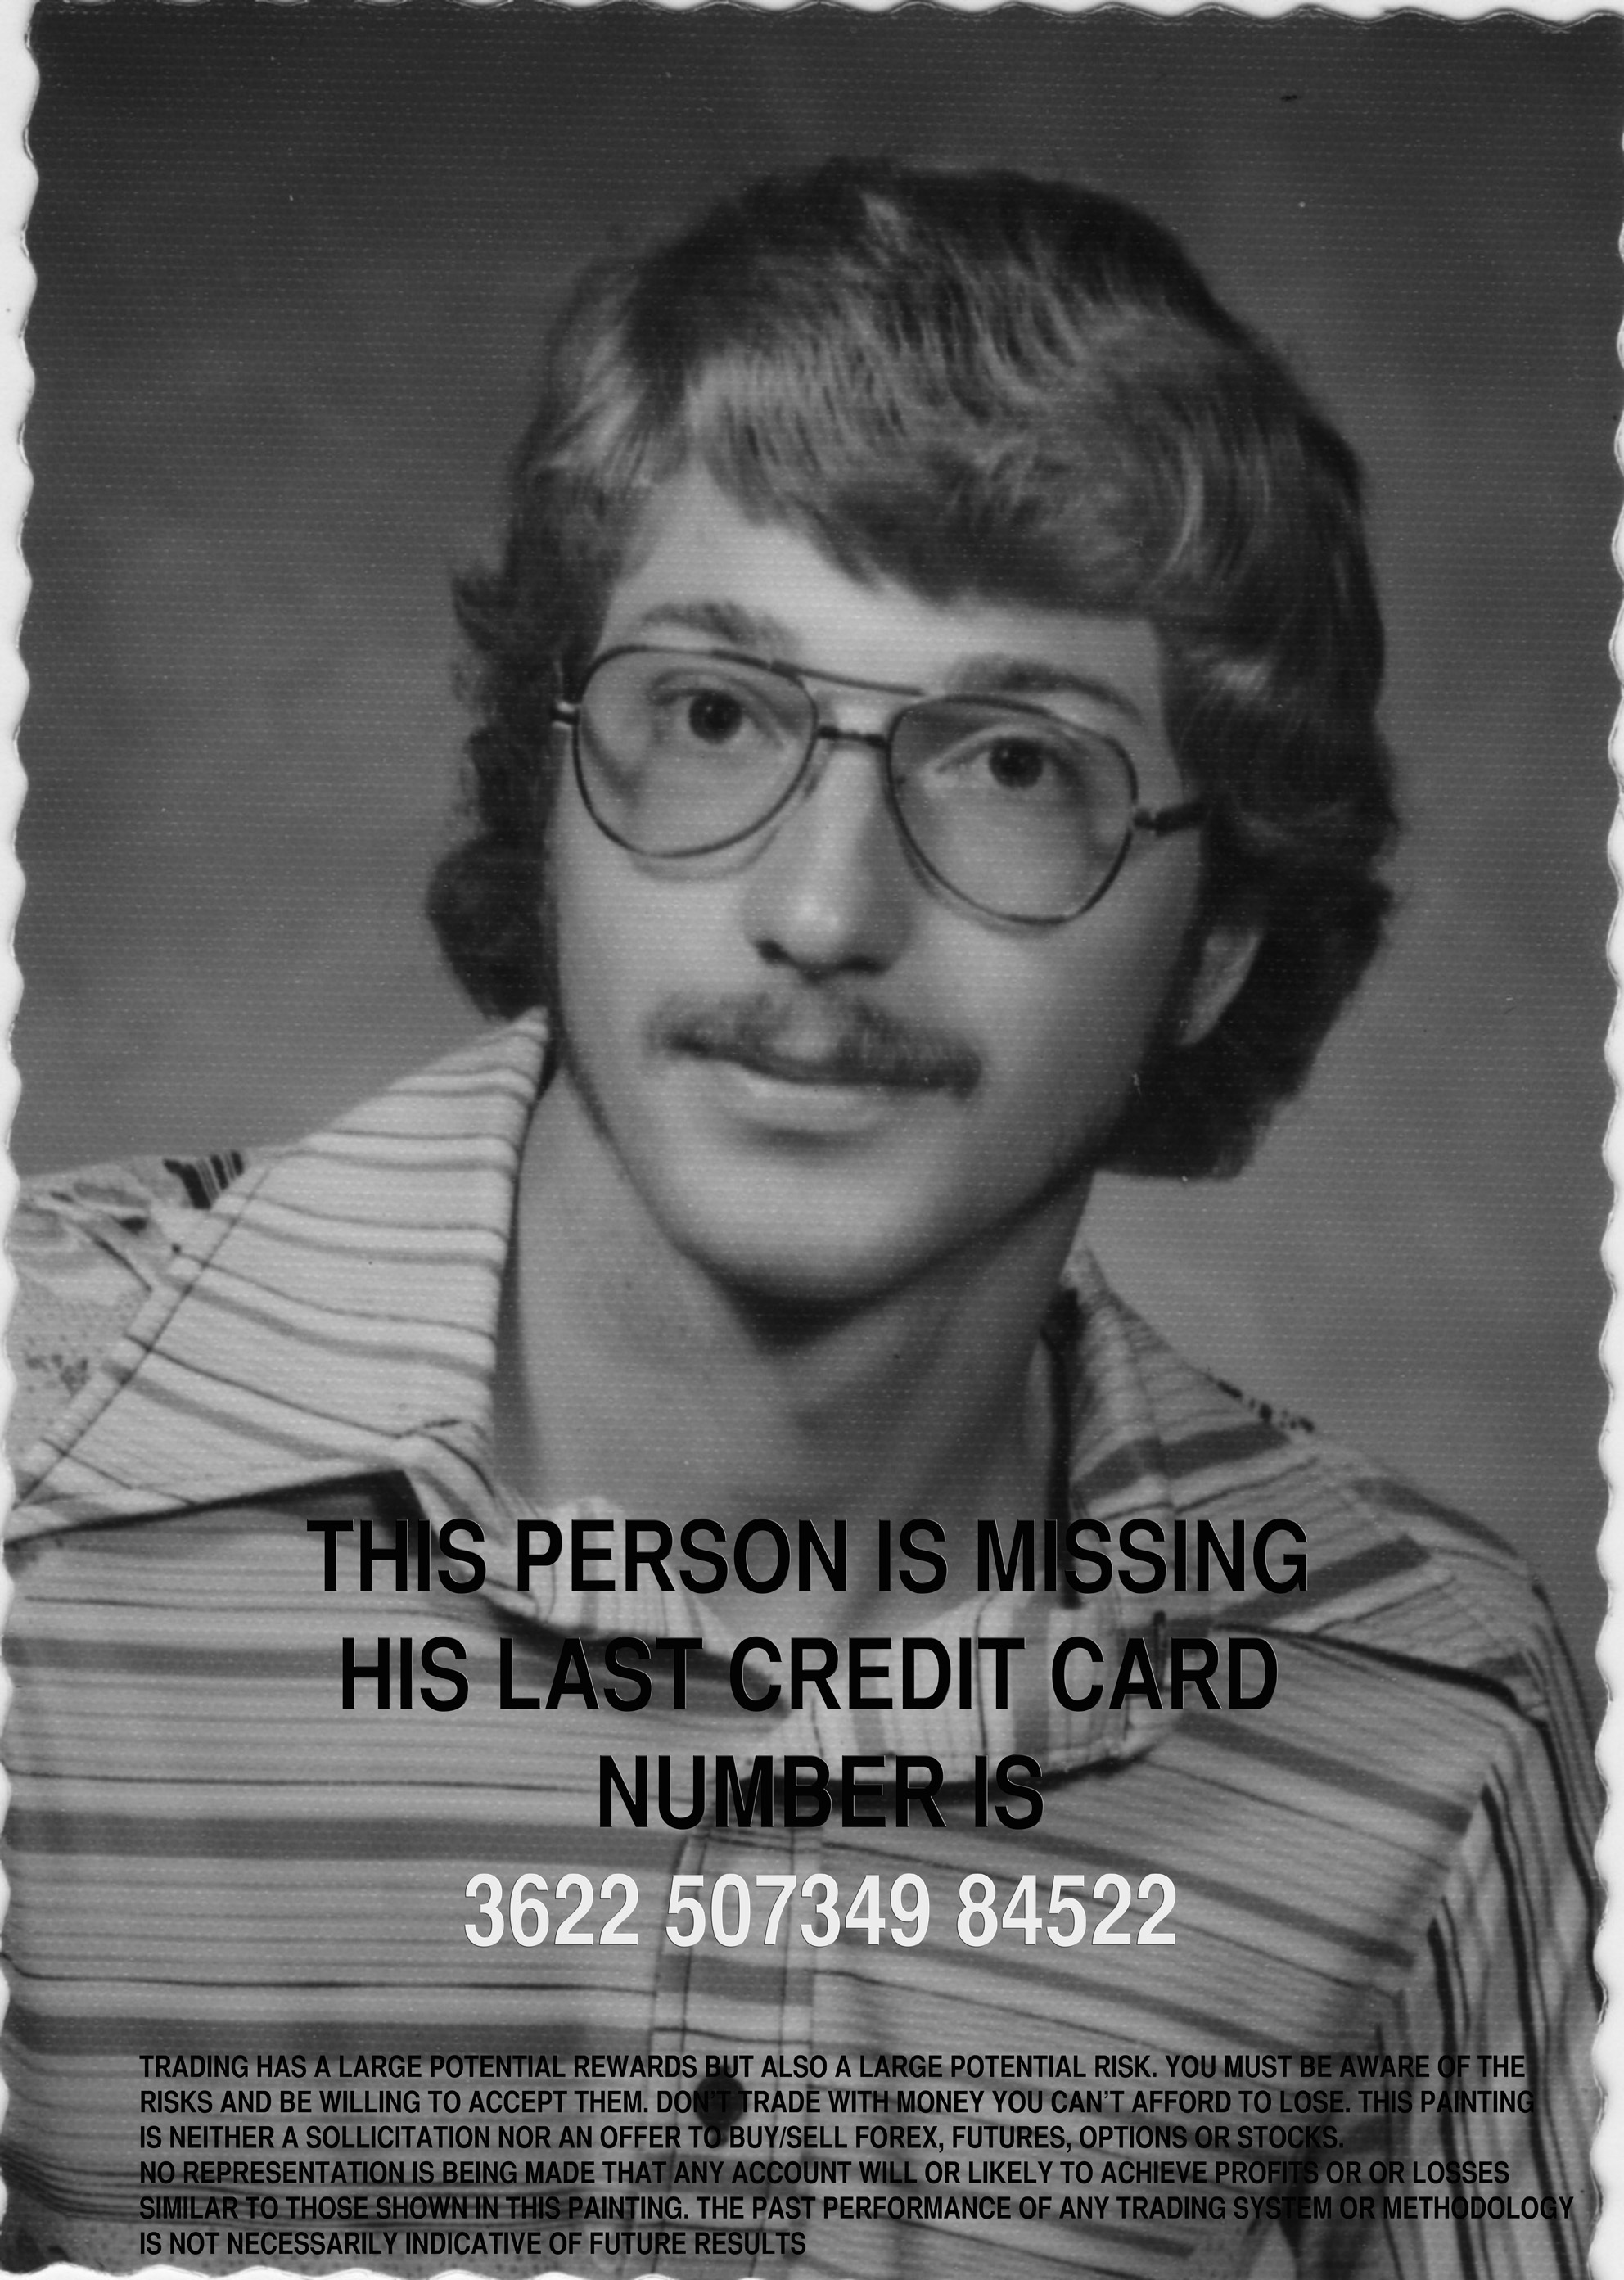 MISSING PERSON 3622 507349 84522